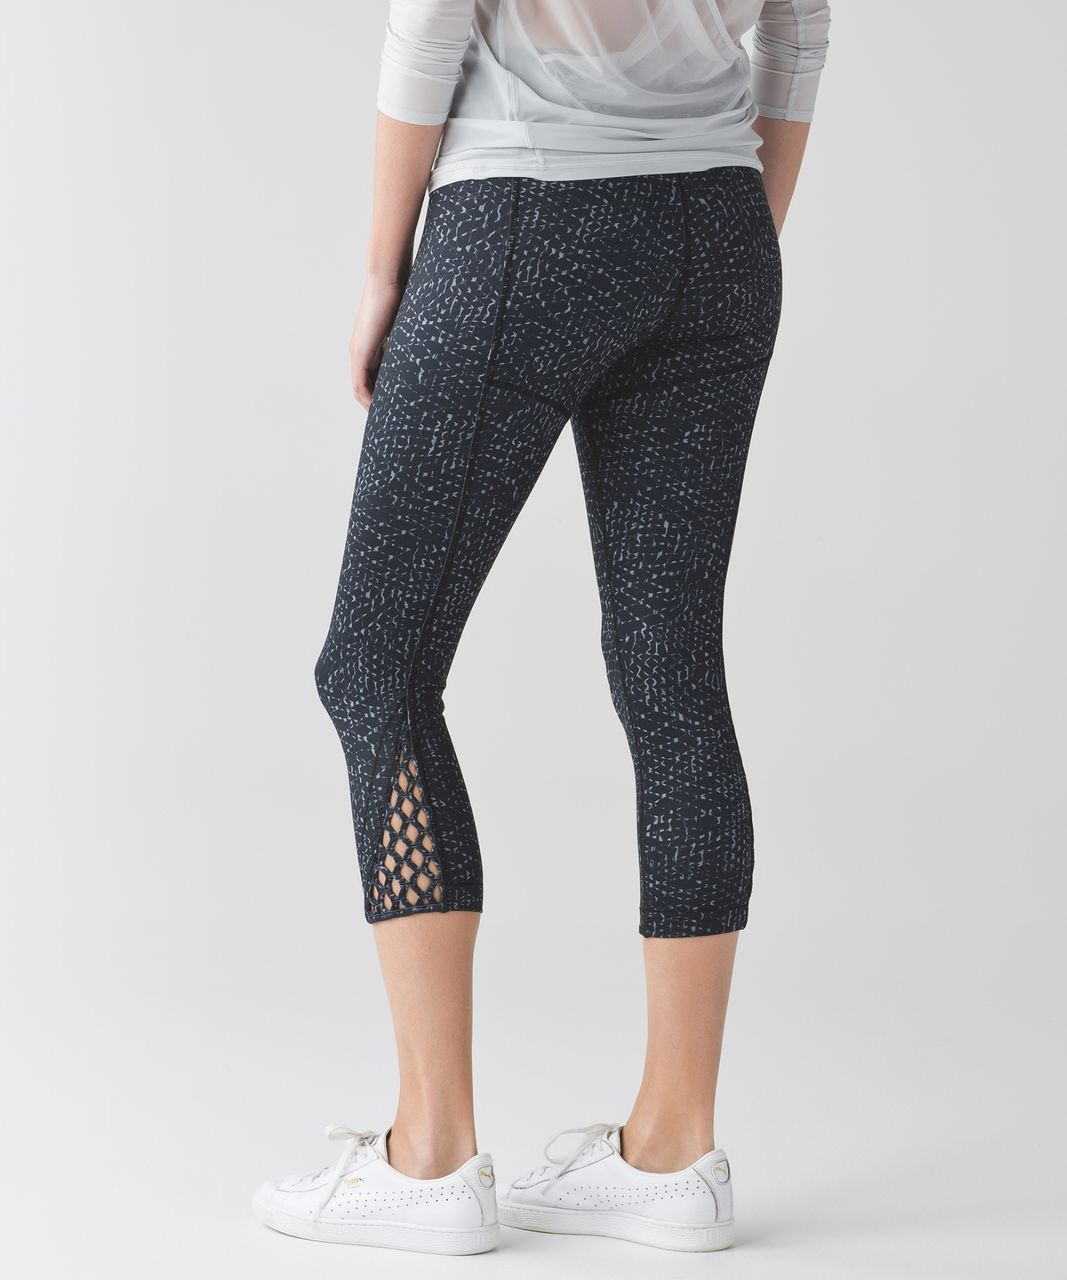 Lululemon True Self Crop II - Samba Snake Battleship Black